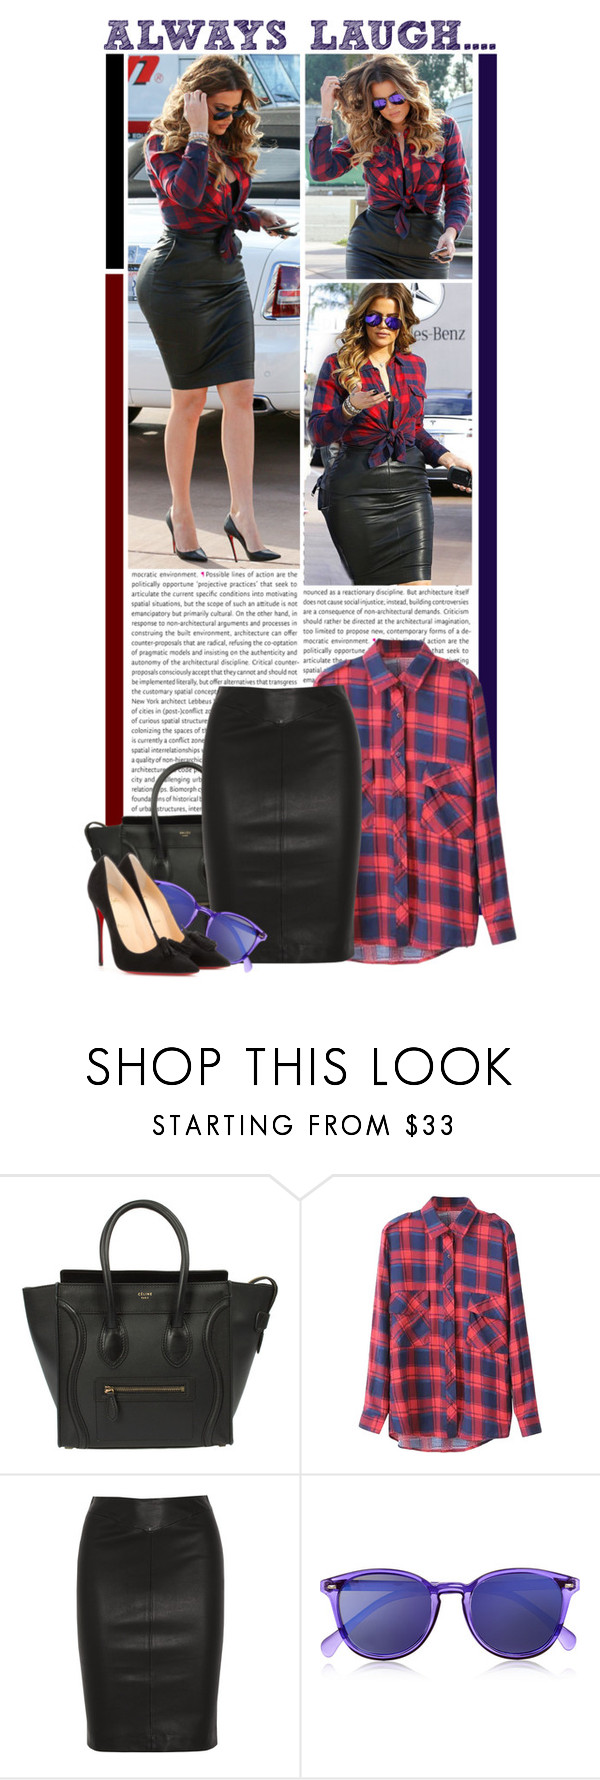 """#1353 (Khloe Kardashian)"" by lauren1993 ❤ liked on Polyvore featuring Oris, Joseph, Le Specs and Christian Louboutin"